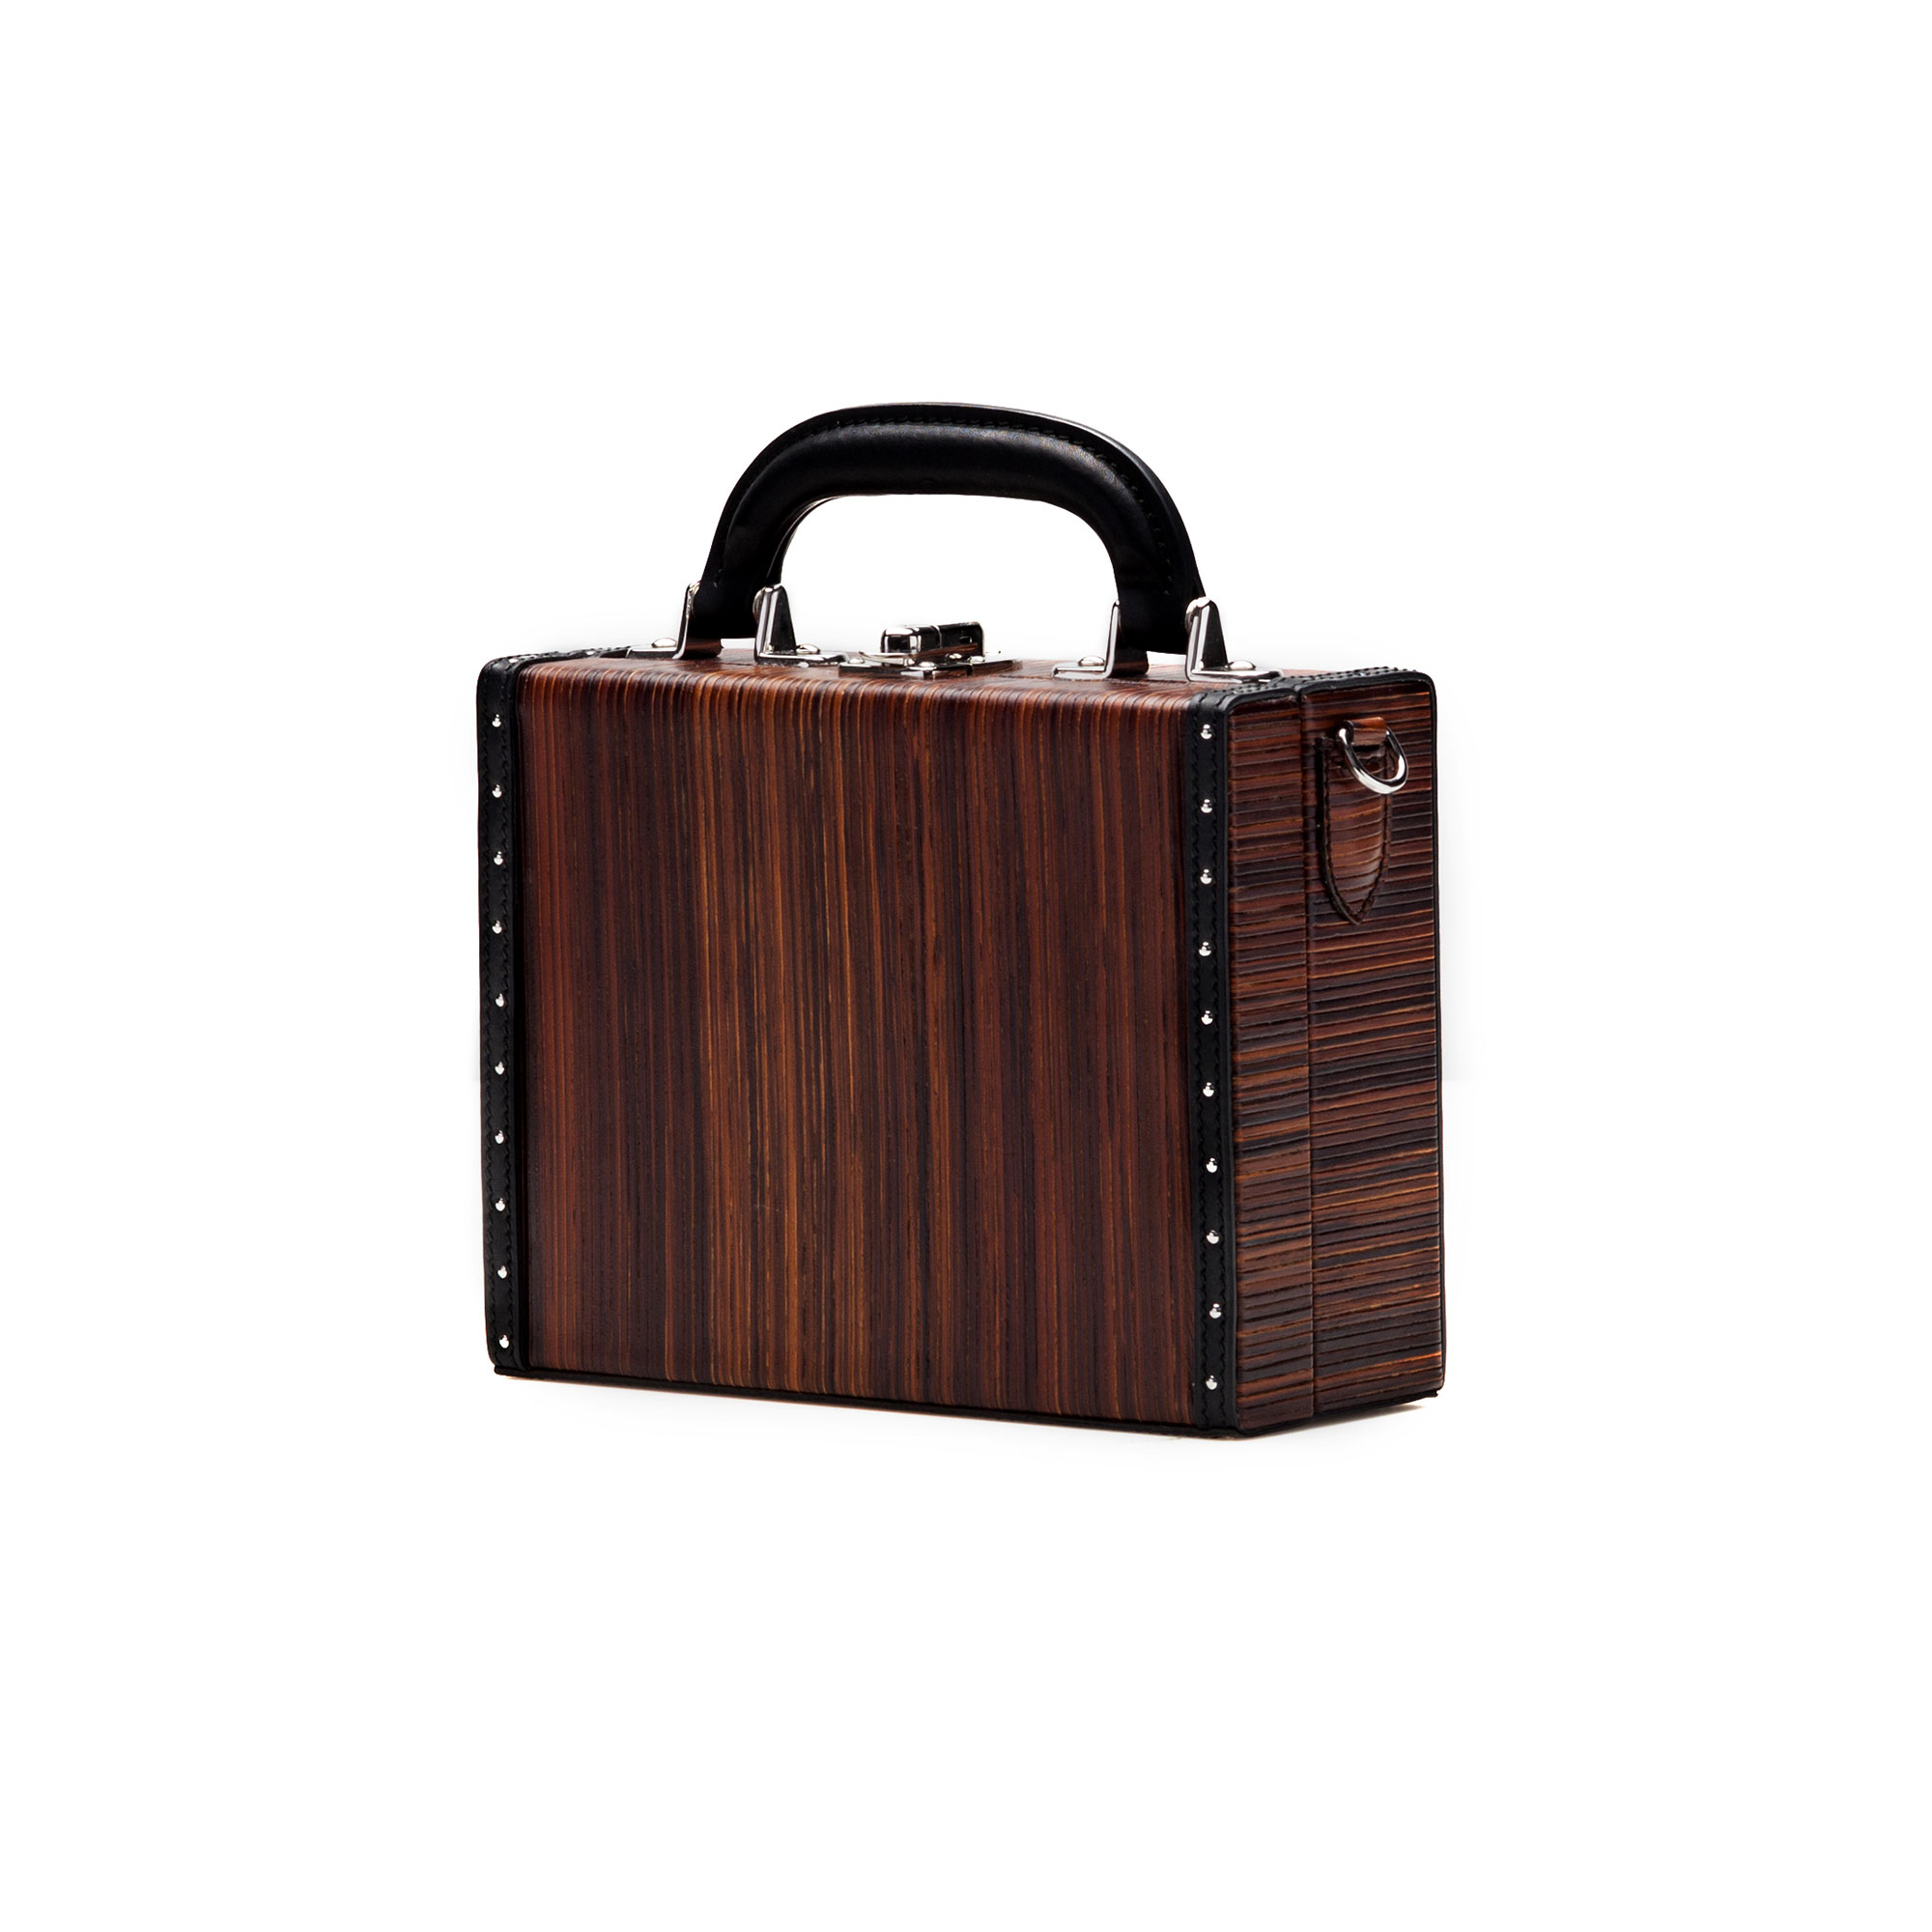 The leather color french calf, wood leather Mini Squared Bertoncina bag by Bertoni 1949 02